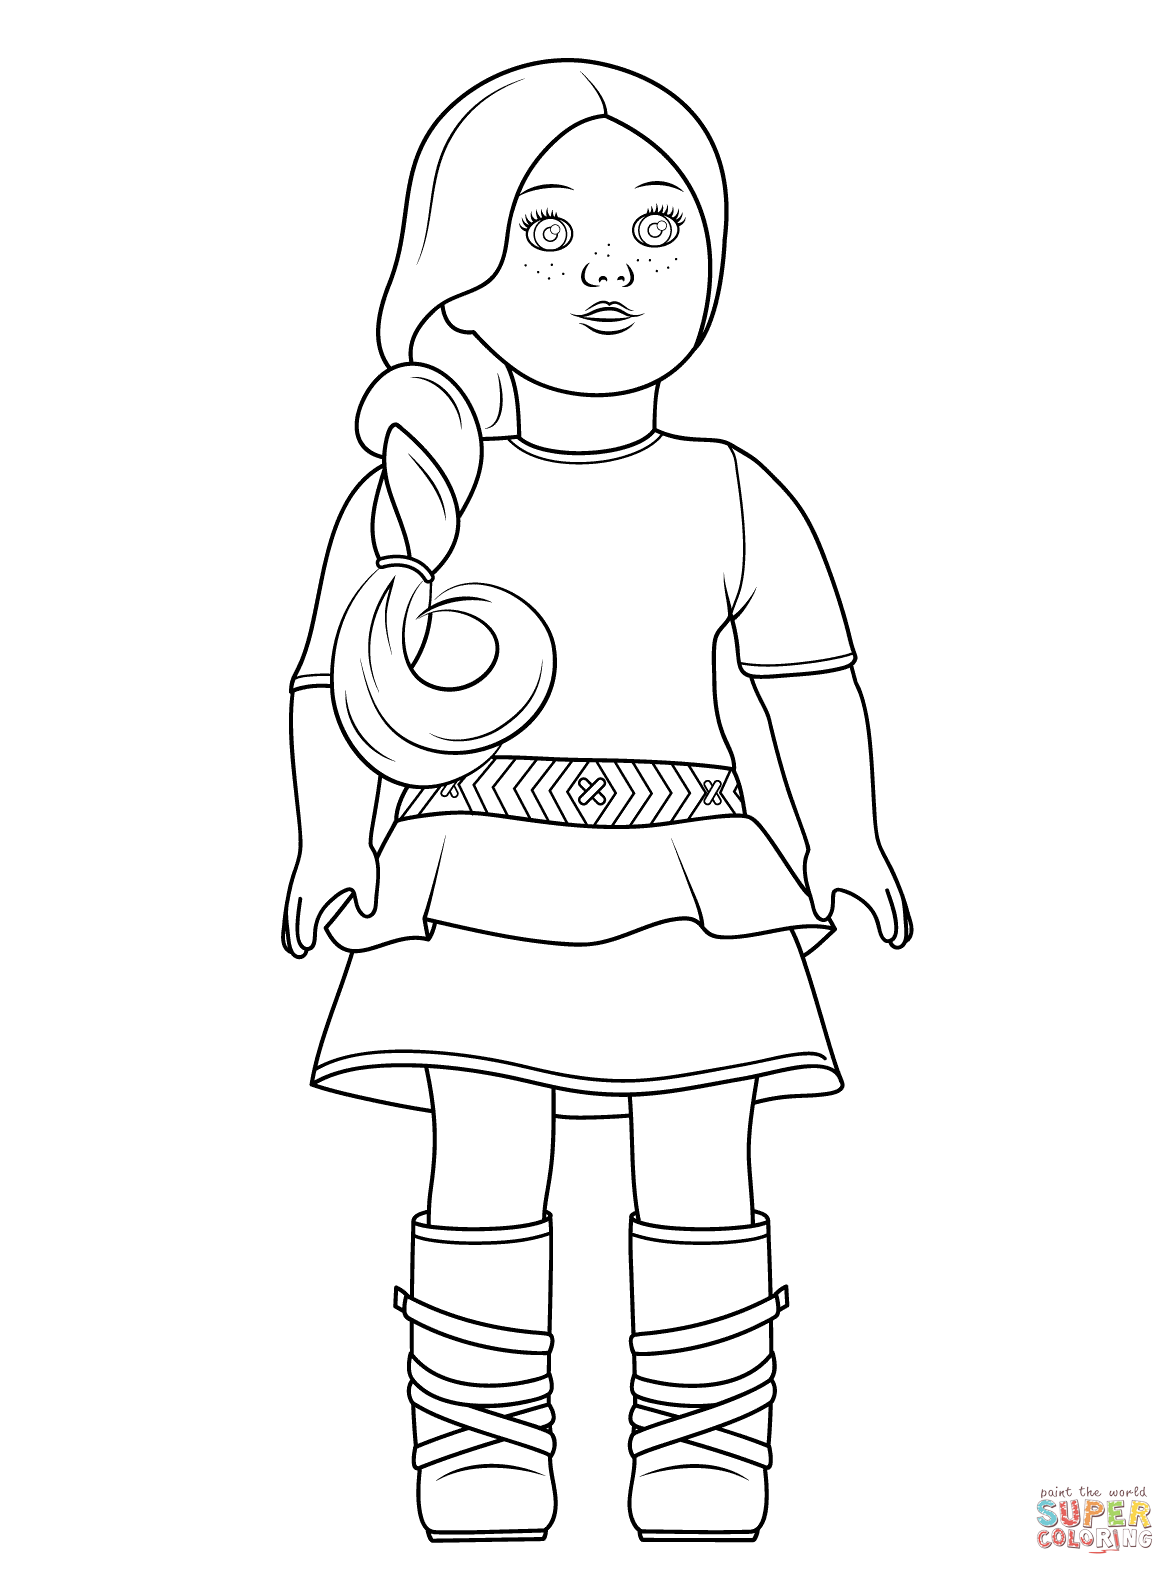 American Girl Coloring Page - Coloring Pages for Kids and for Adults